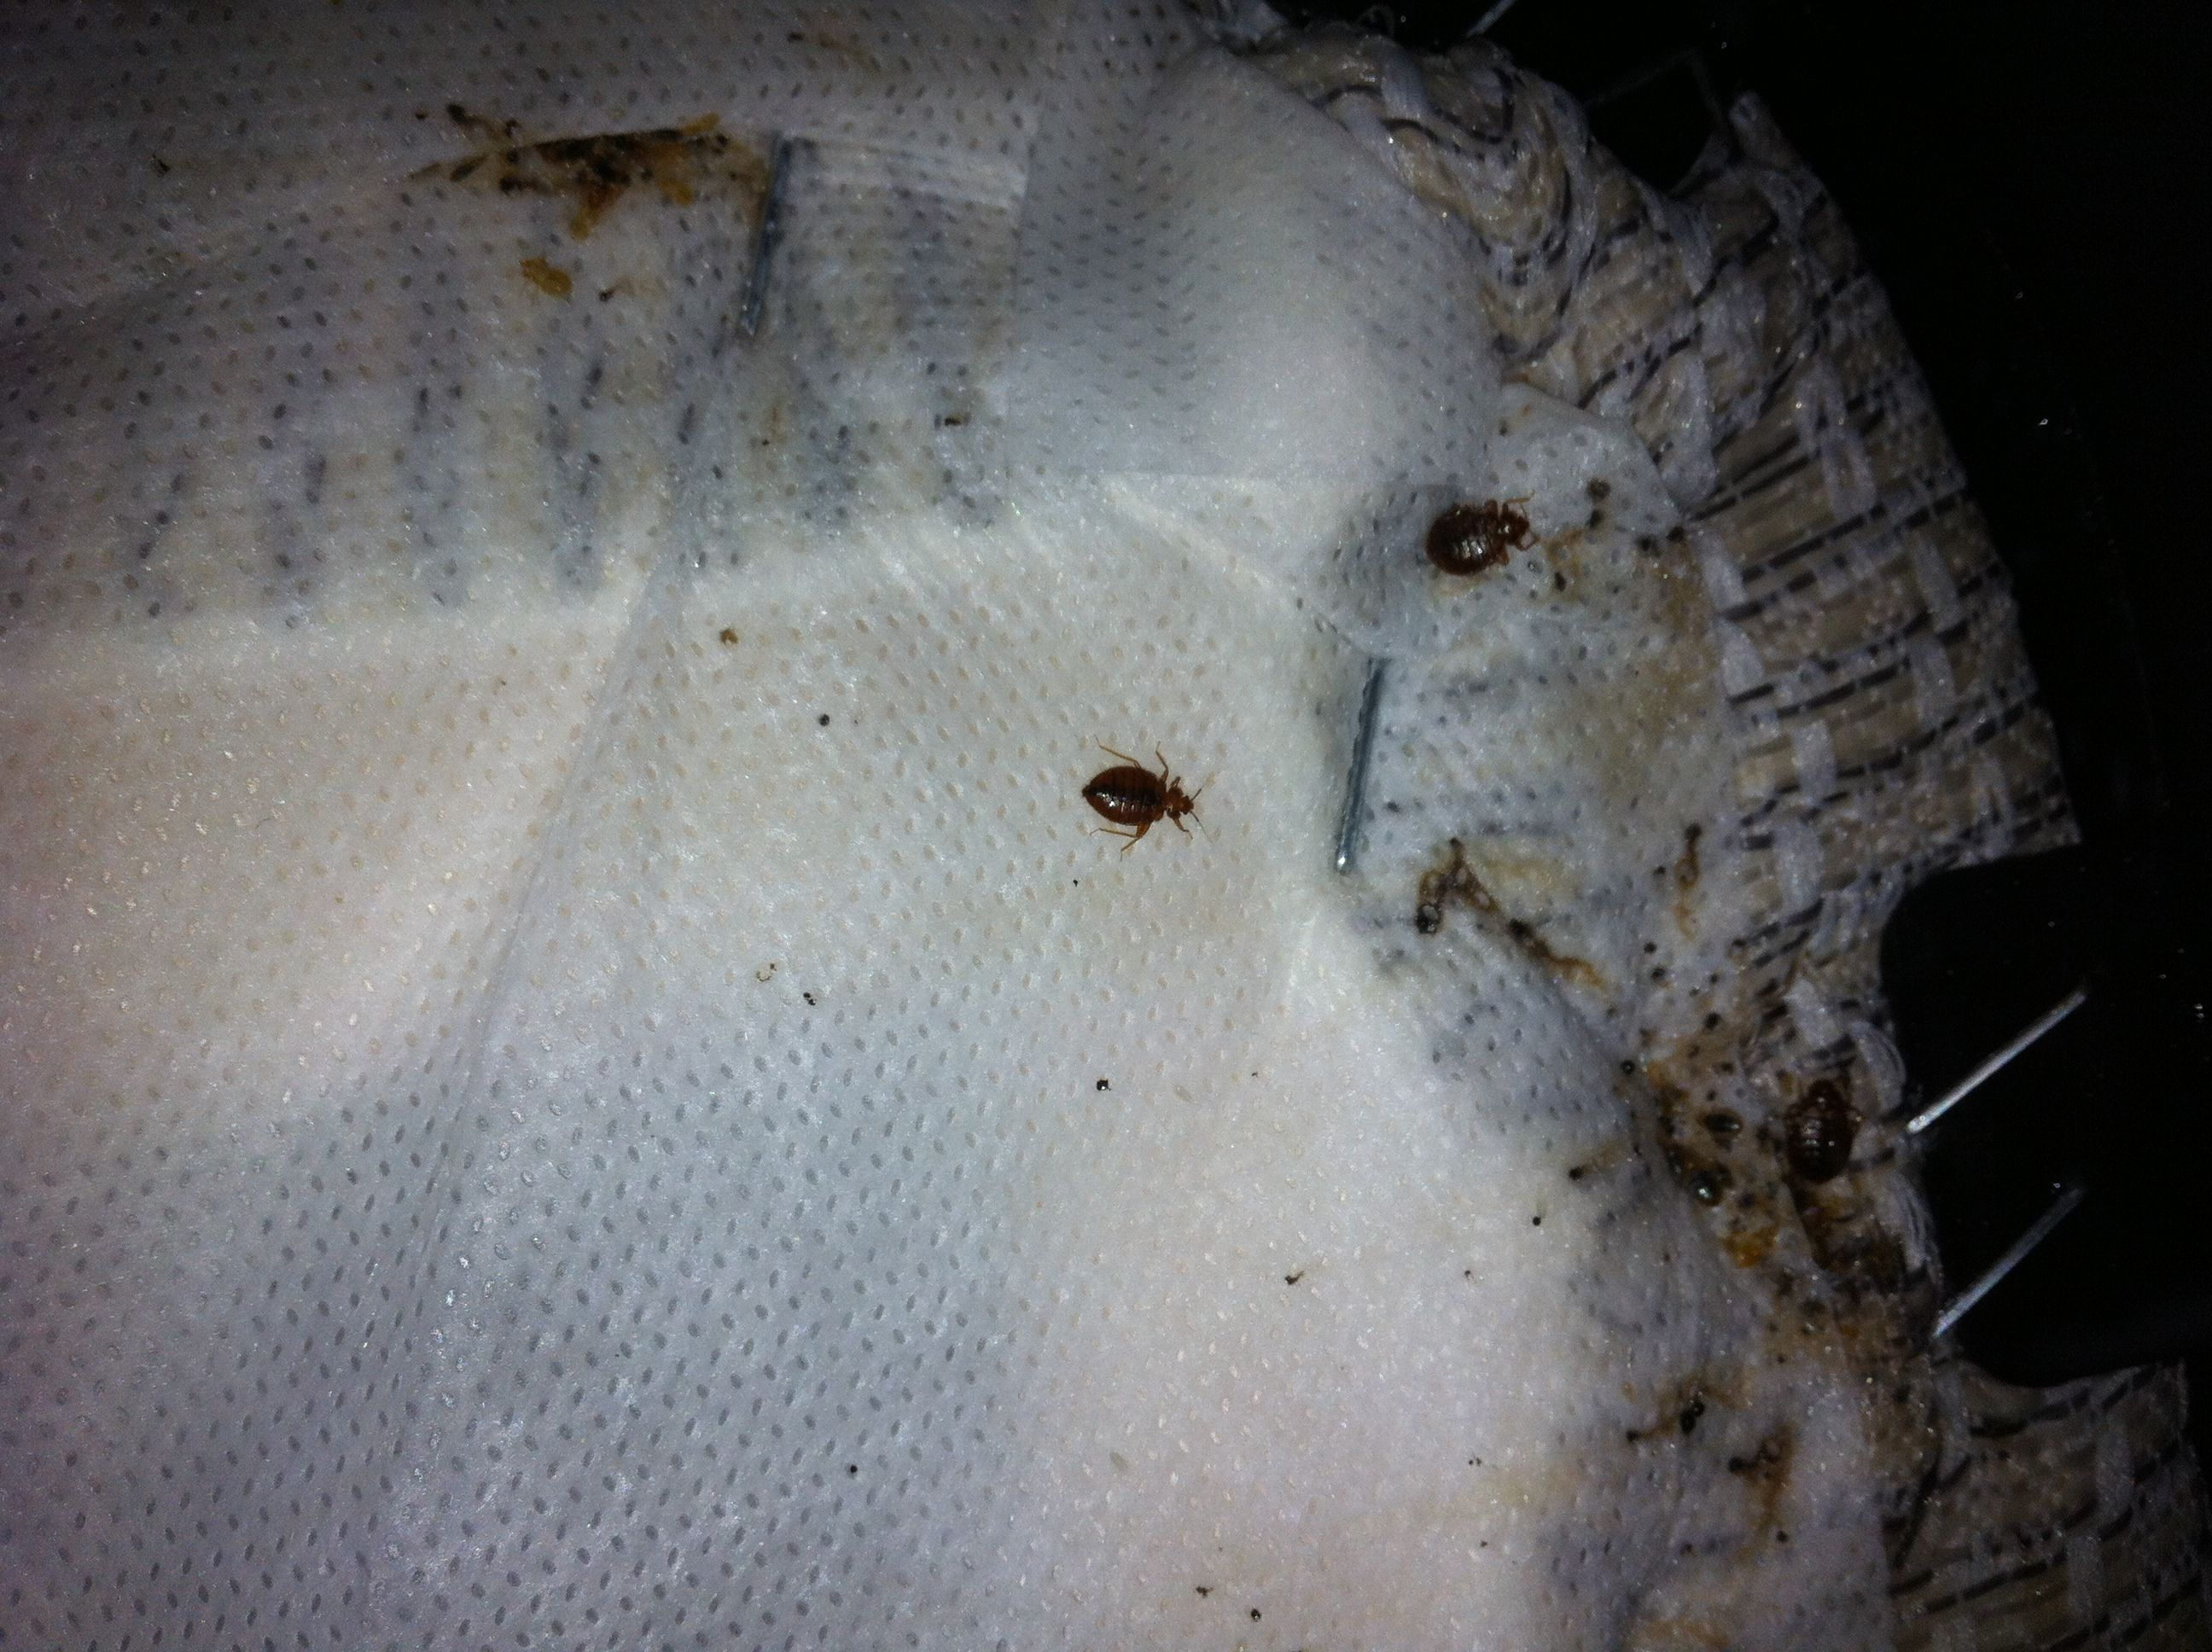 Bed Bugs Leave Small Black Spots Usually Near The Head End Of Mattress Or Box Spring If There Is Moderate To Heavy Activity Black Pat Mites Bed Bugs Bugout